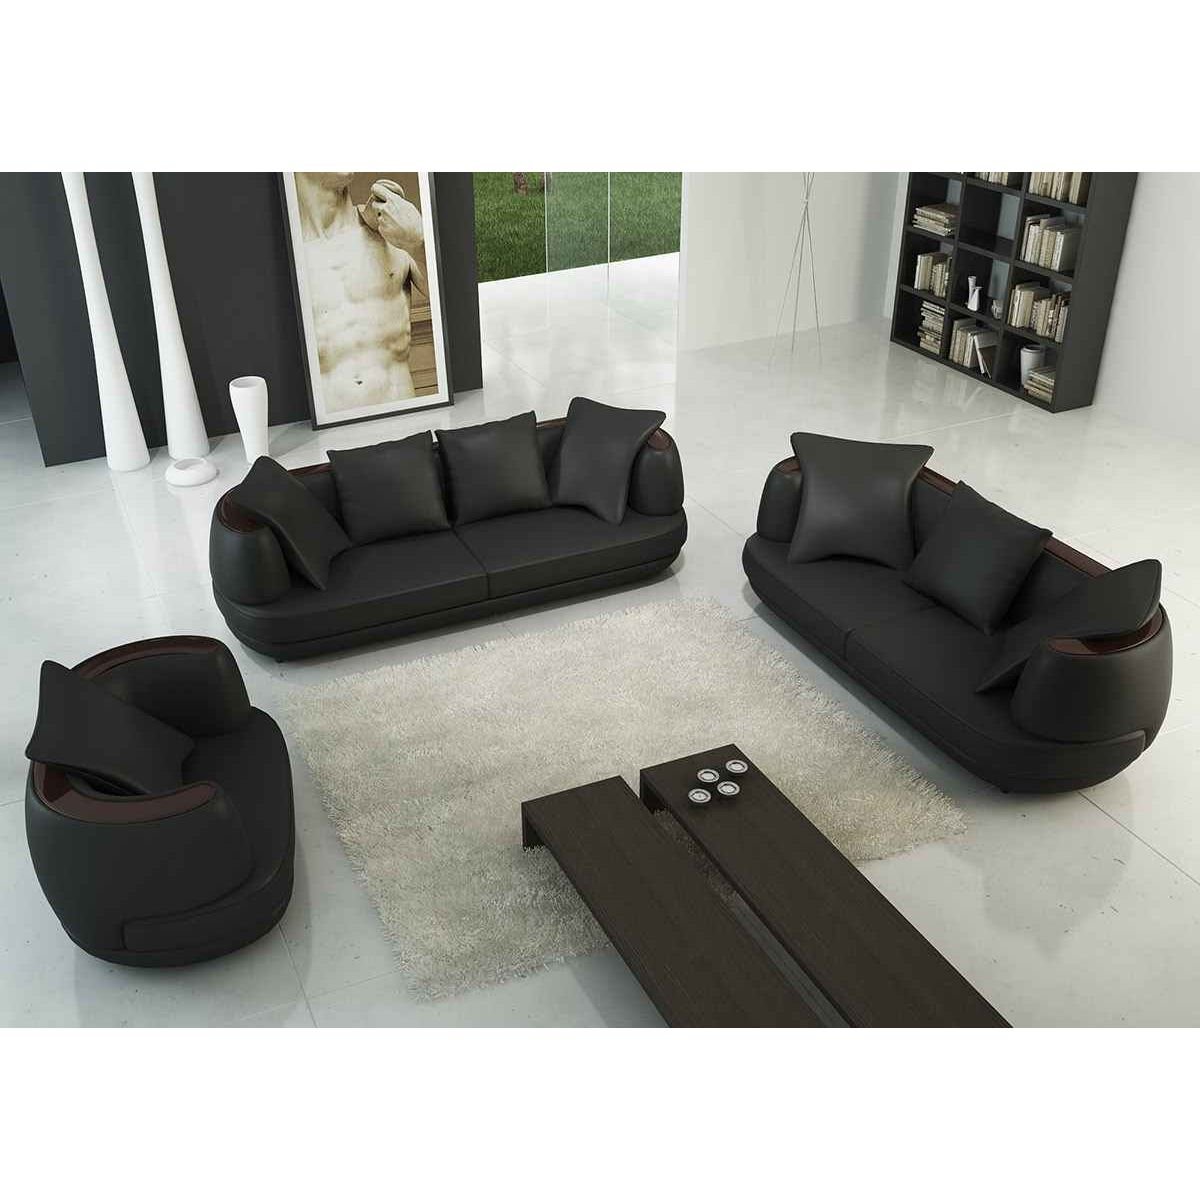 deco in paris ensemble canape 3 2 1 places noir en cuir. Black Bedroom Furniture Sets. Home Design Ideas